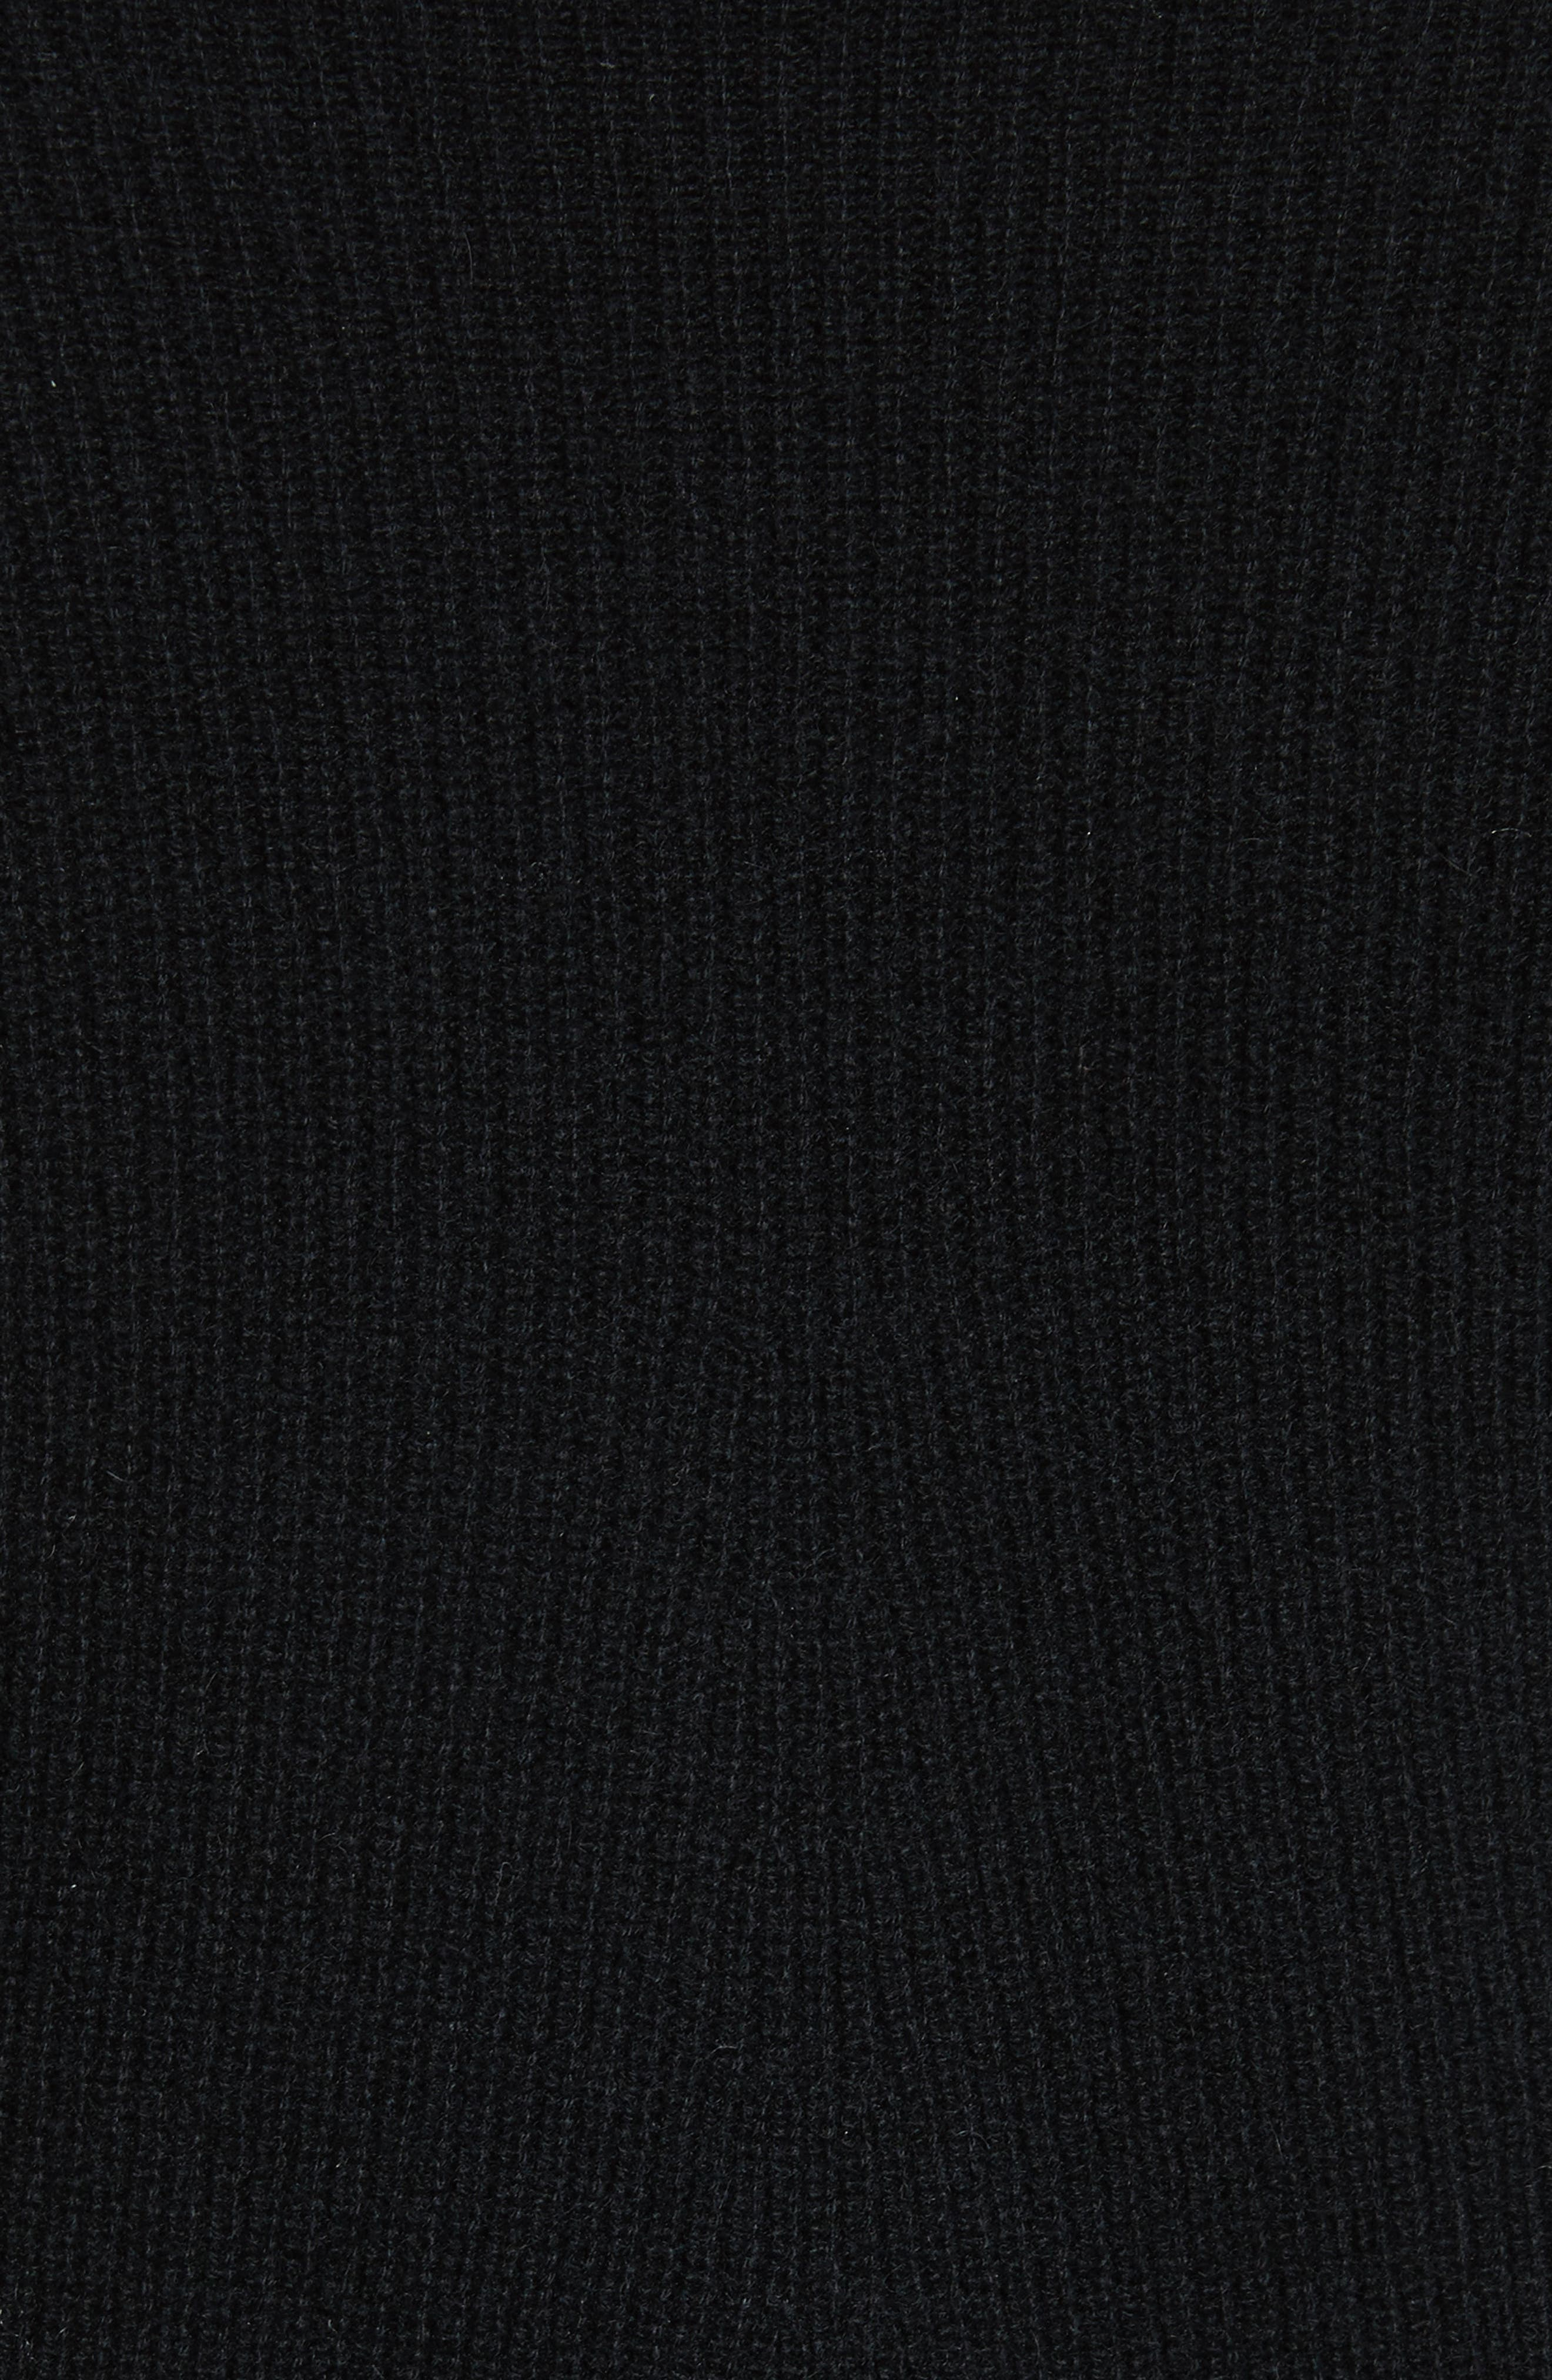 Ribbed Cashmere Sweater,                             Alternate thumbnail 5, color,                             Black